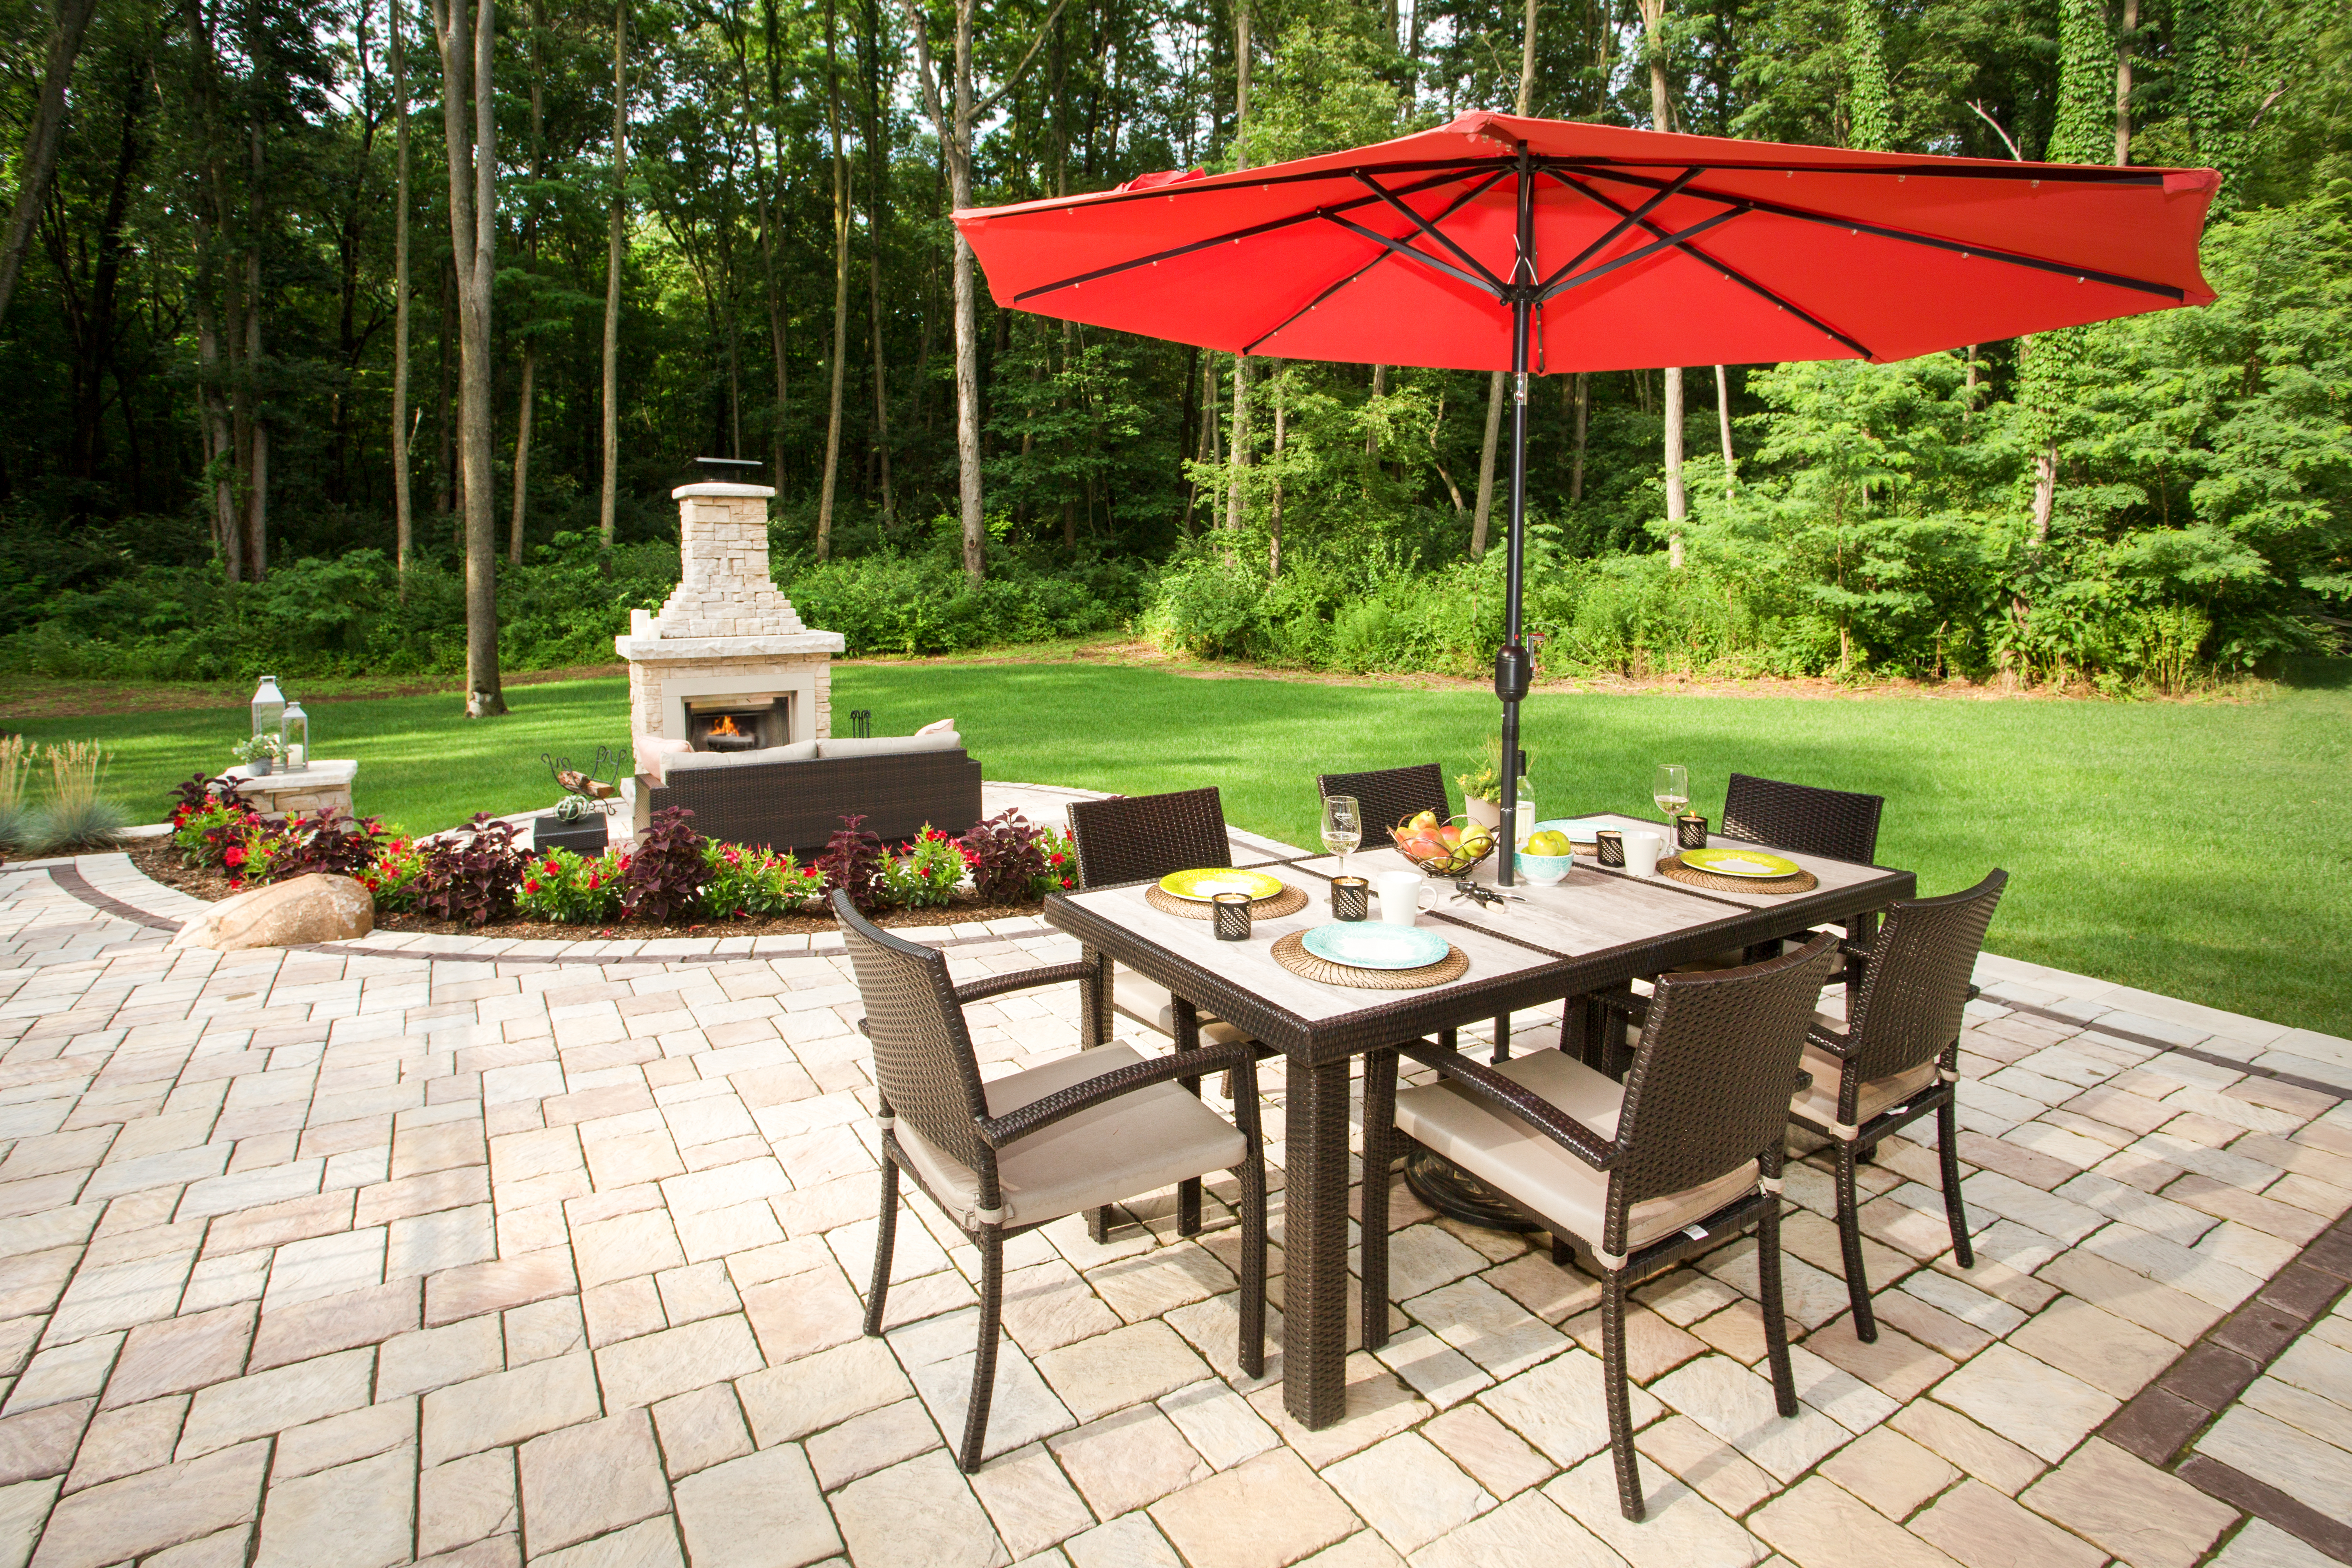 Making time to spend with family and friends doesn't have to be hard when you have a beautiful New Mission patio to share. Products shown: New Mission and Belvedere Fireplace Kit